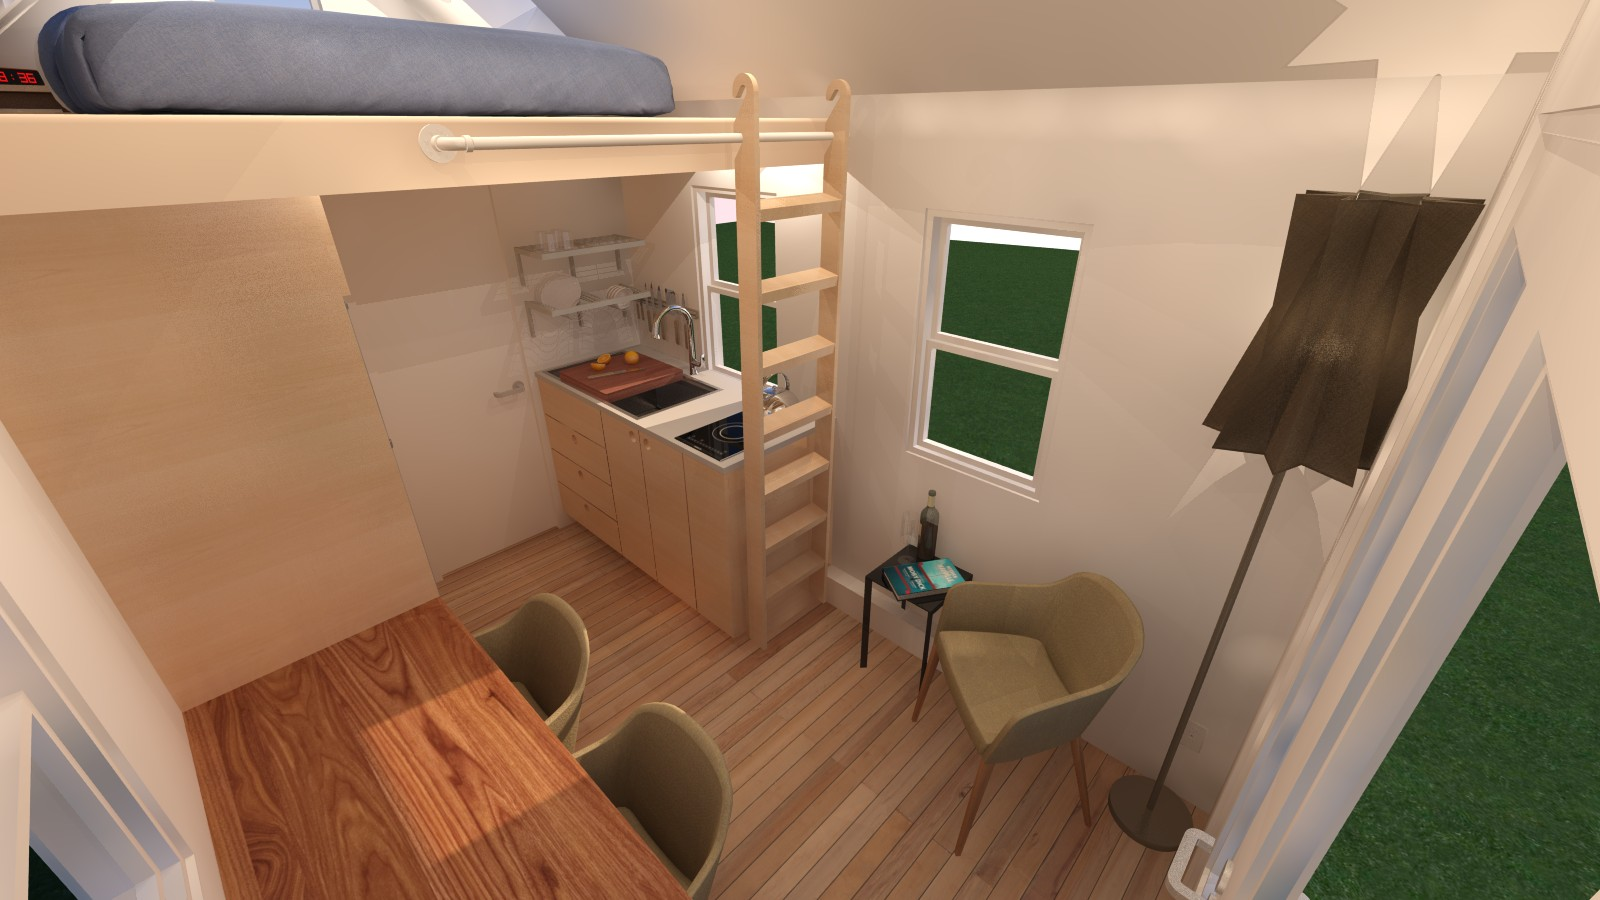 18 tiny house designs - House interior images ...